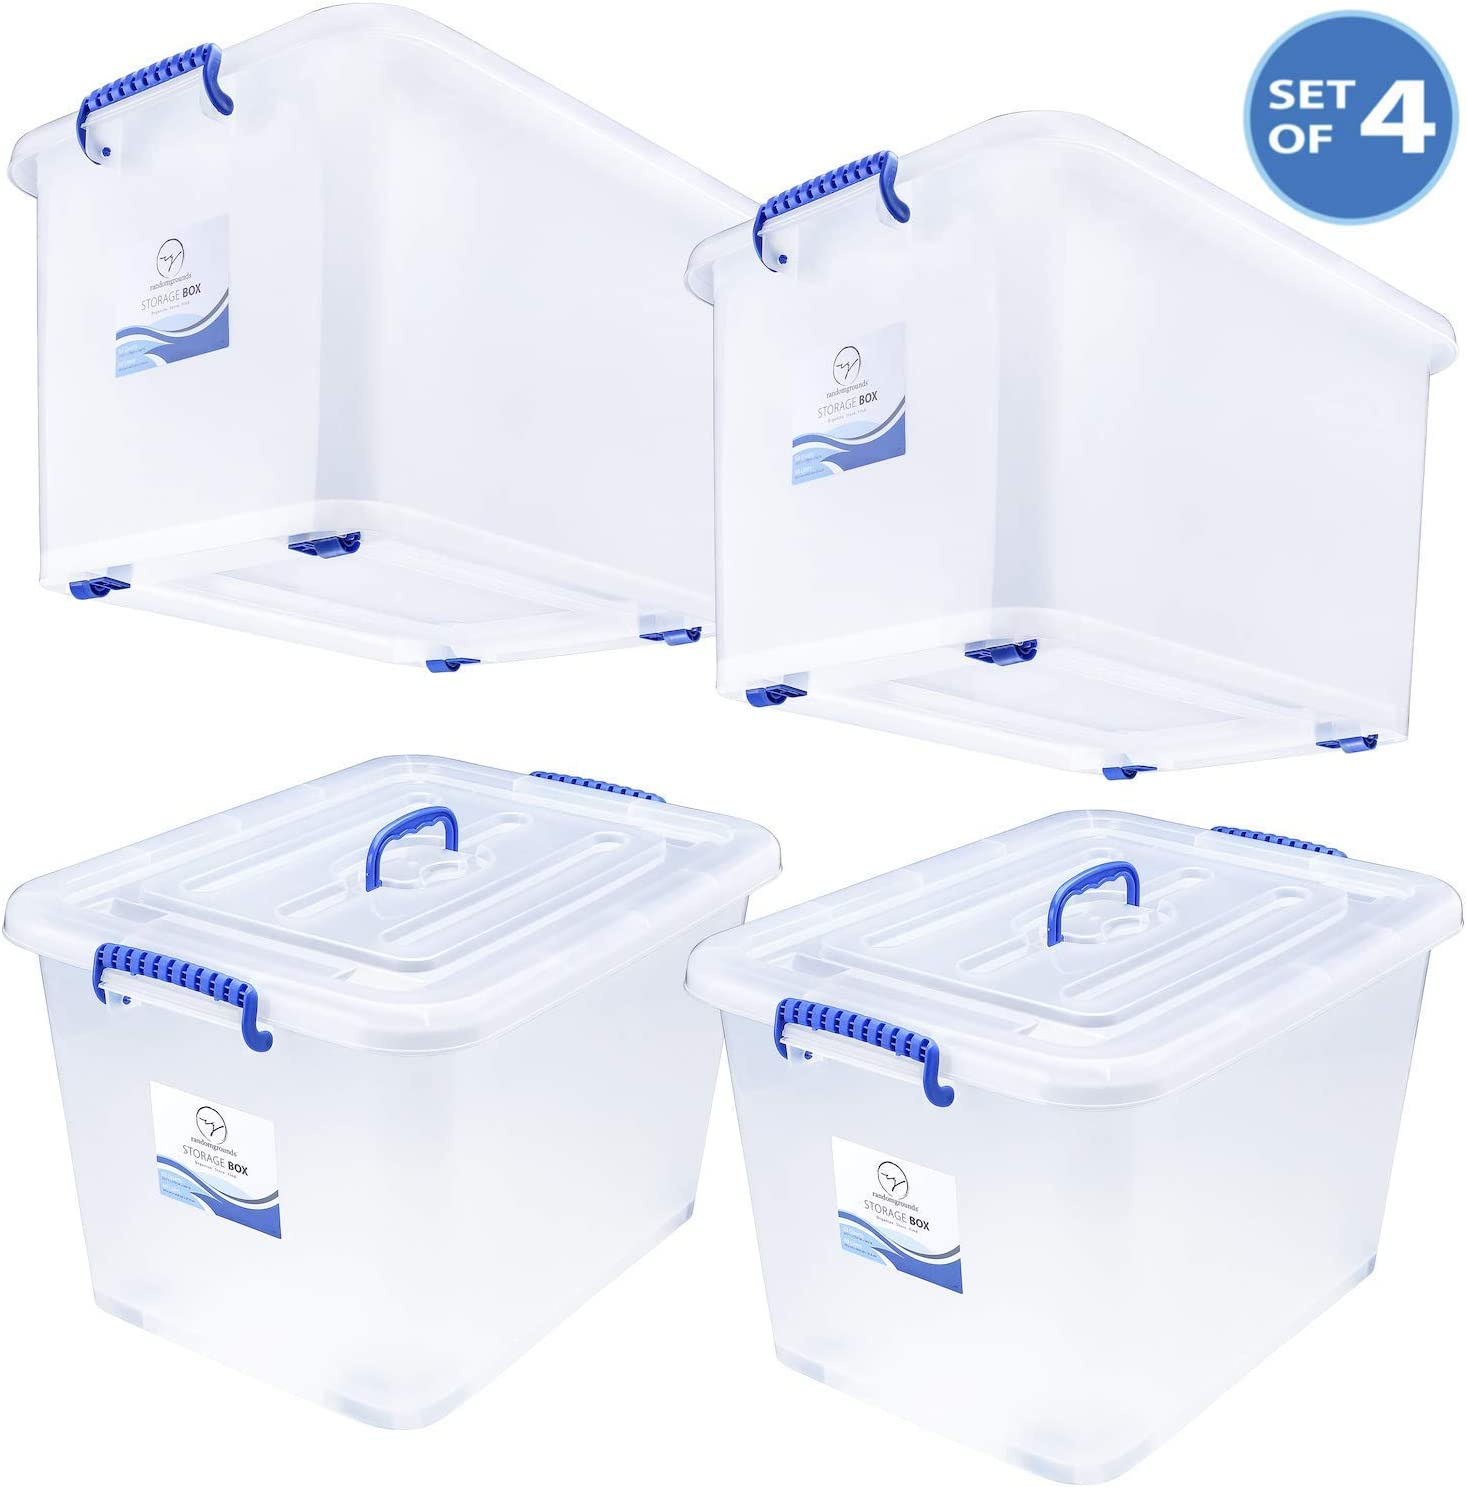 Storage Bins with Lids and Wheels - Great for Toys Shoes Tools Clothes Bed Laundry Closet Garage Office Organization - Plastic Stackable Large Tote Box Containers - Semi Clear White, 63 Quart Set of 4